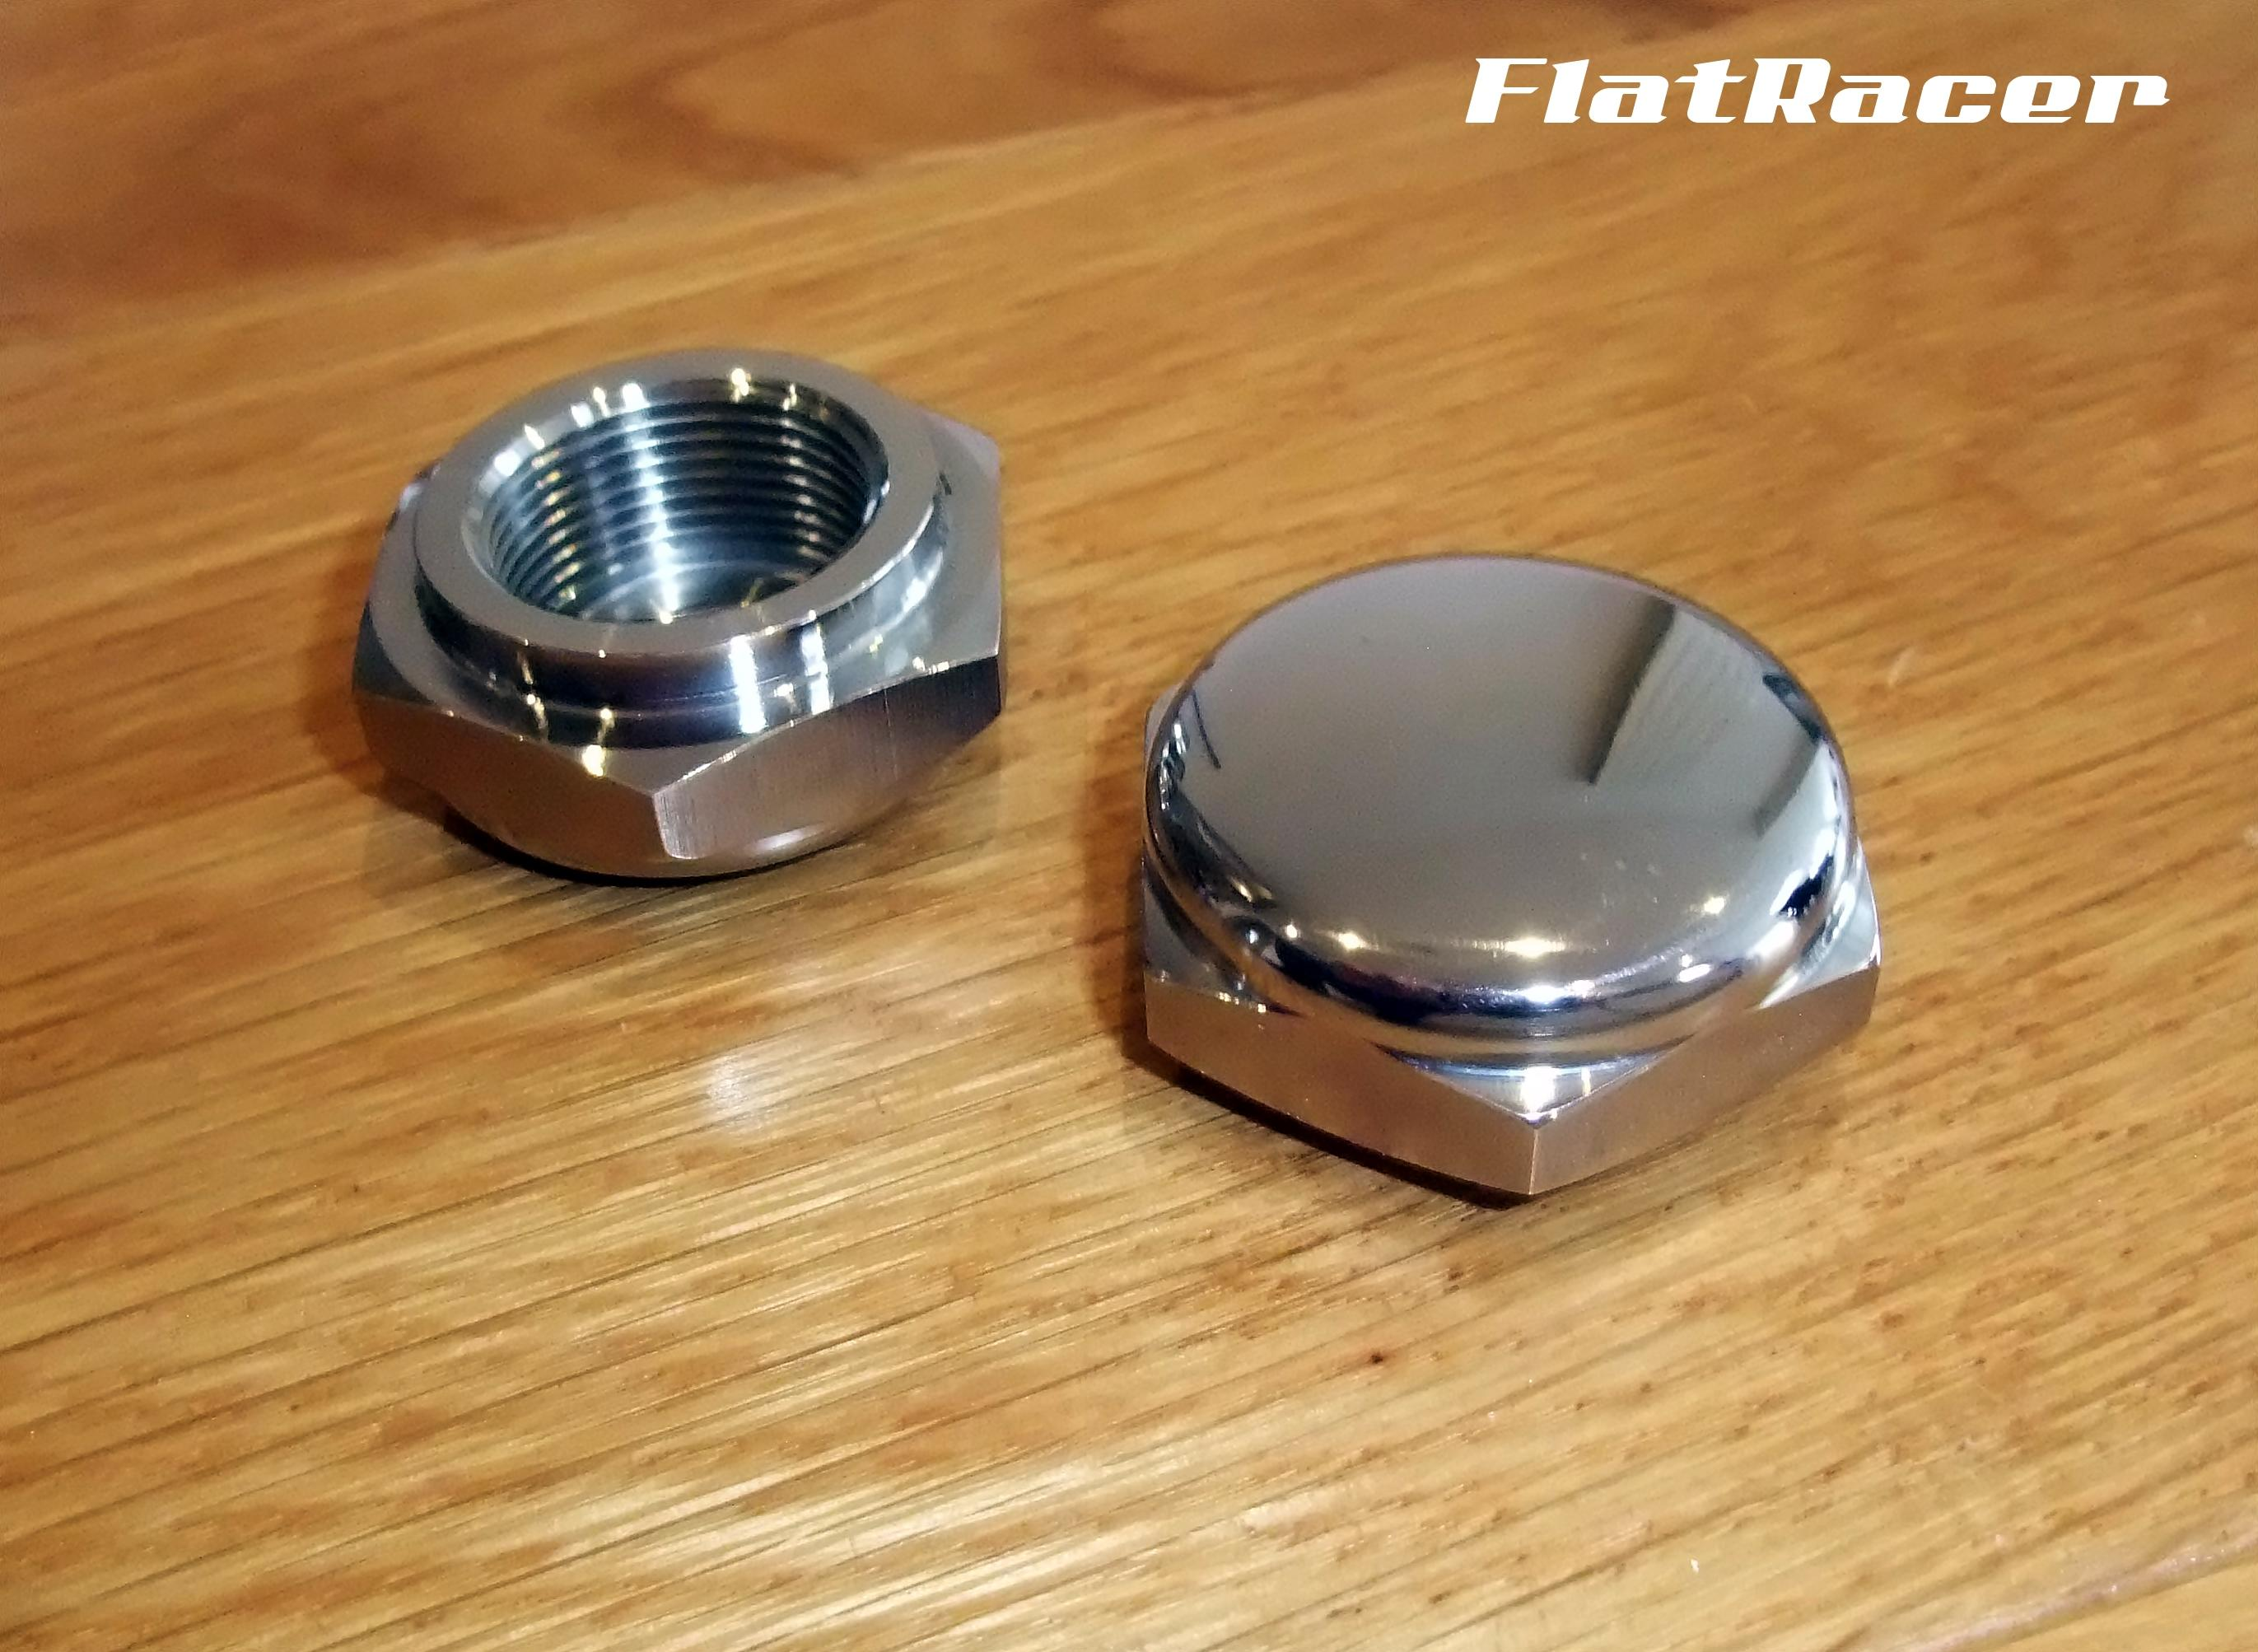 FlatRacer BMW Airhead Boxer R2v Monolever Series (Oct 1985 on) stainless steel top fork nuts (pair)